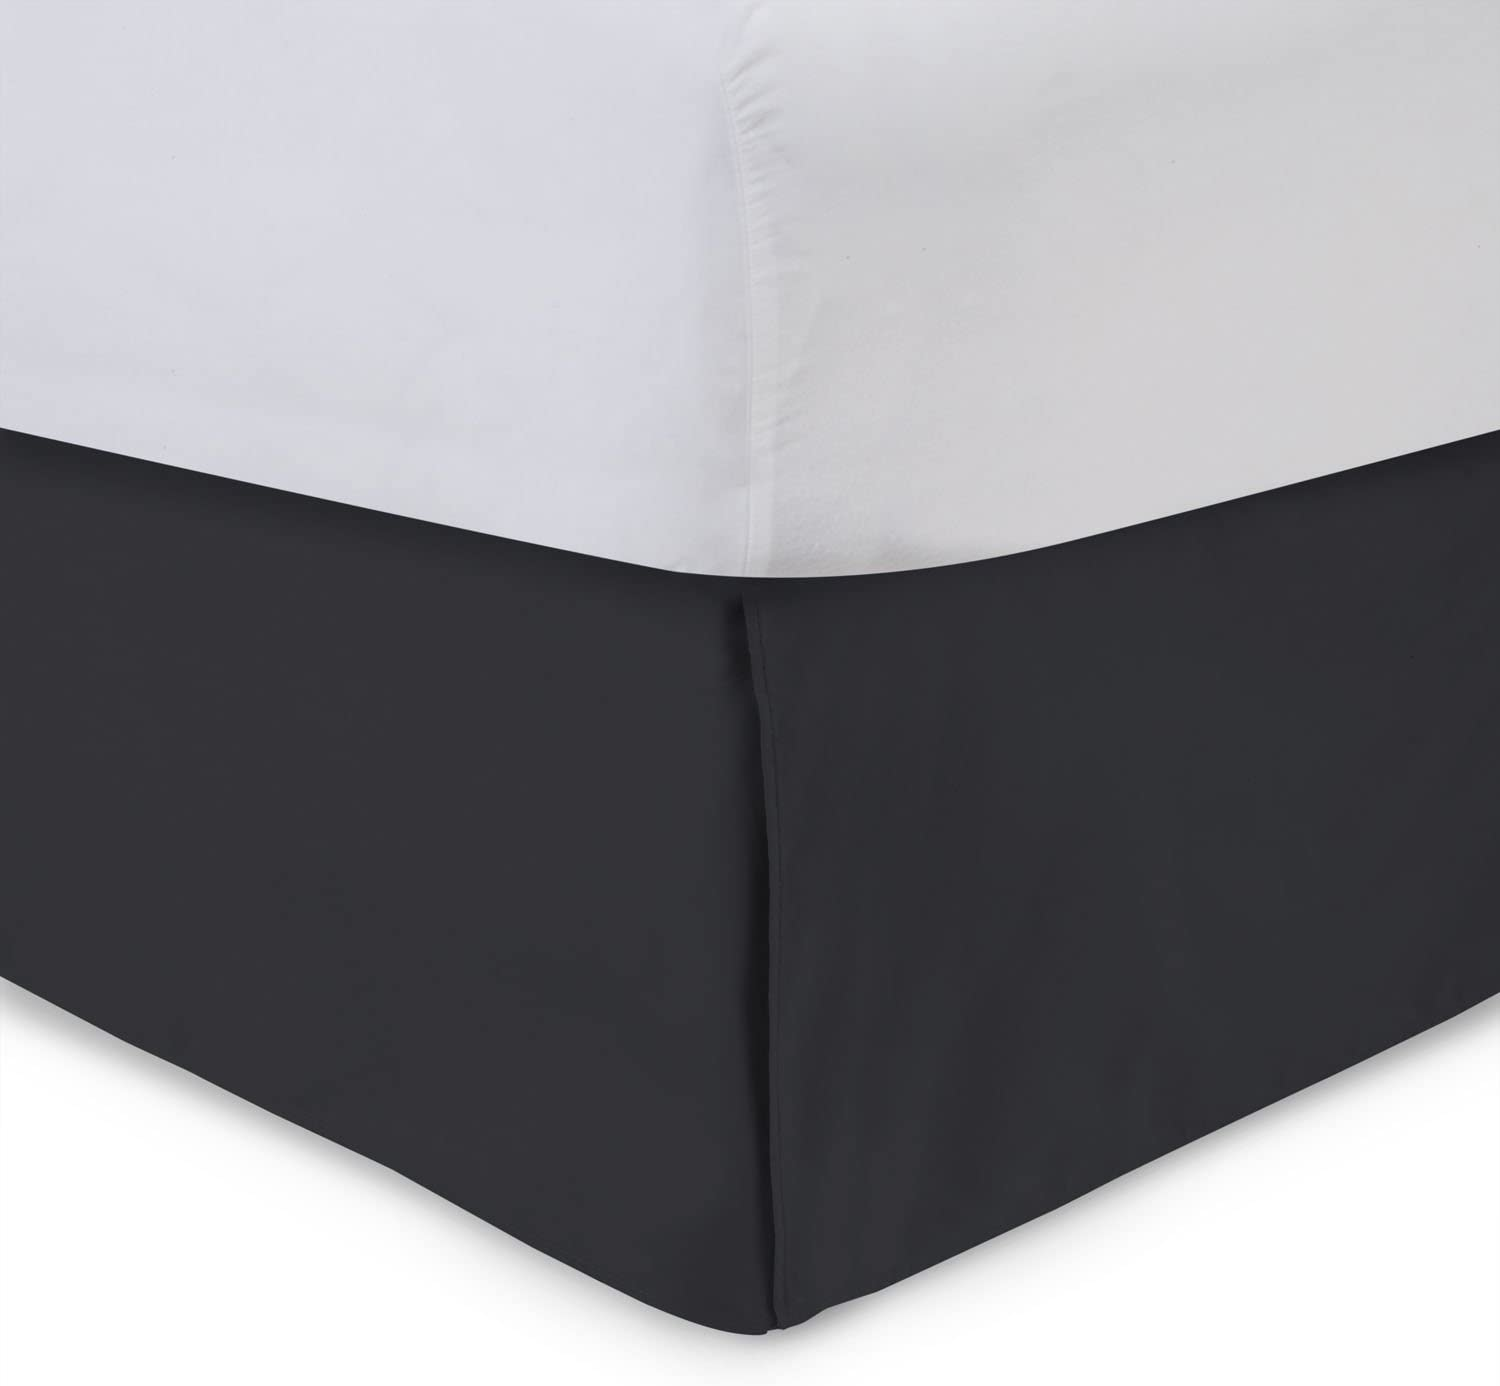 ShopBedding Harmony Lane Tailored Bedskirt - 14 inch Drop, Twin XL, Black Bed Skirt with Split Corners (Available in and 16 Colors)